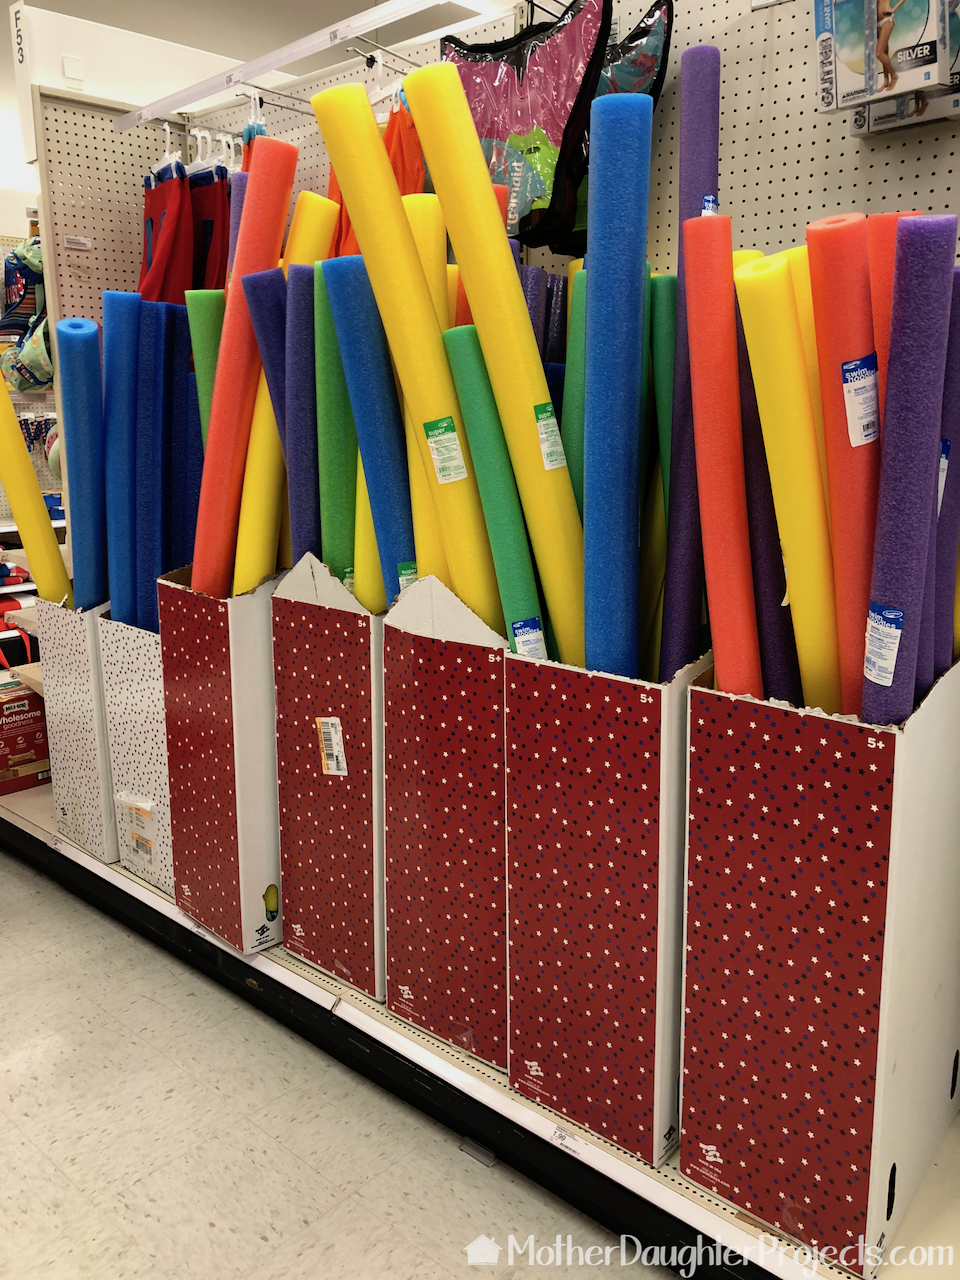 The pool noodles in the Target display.